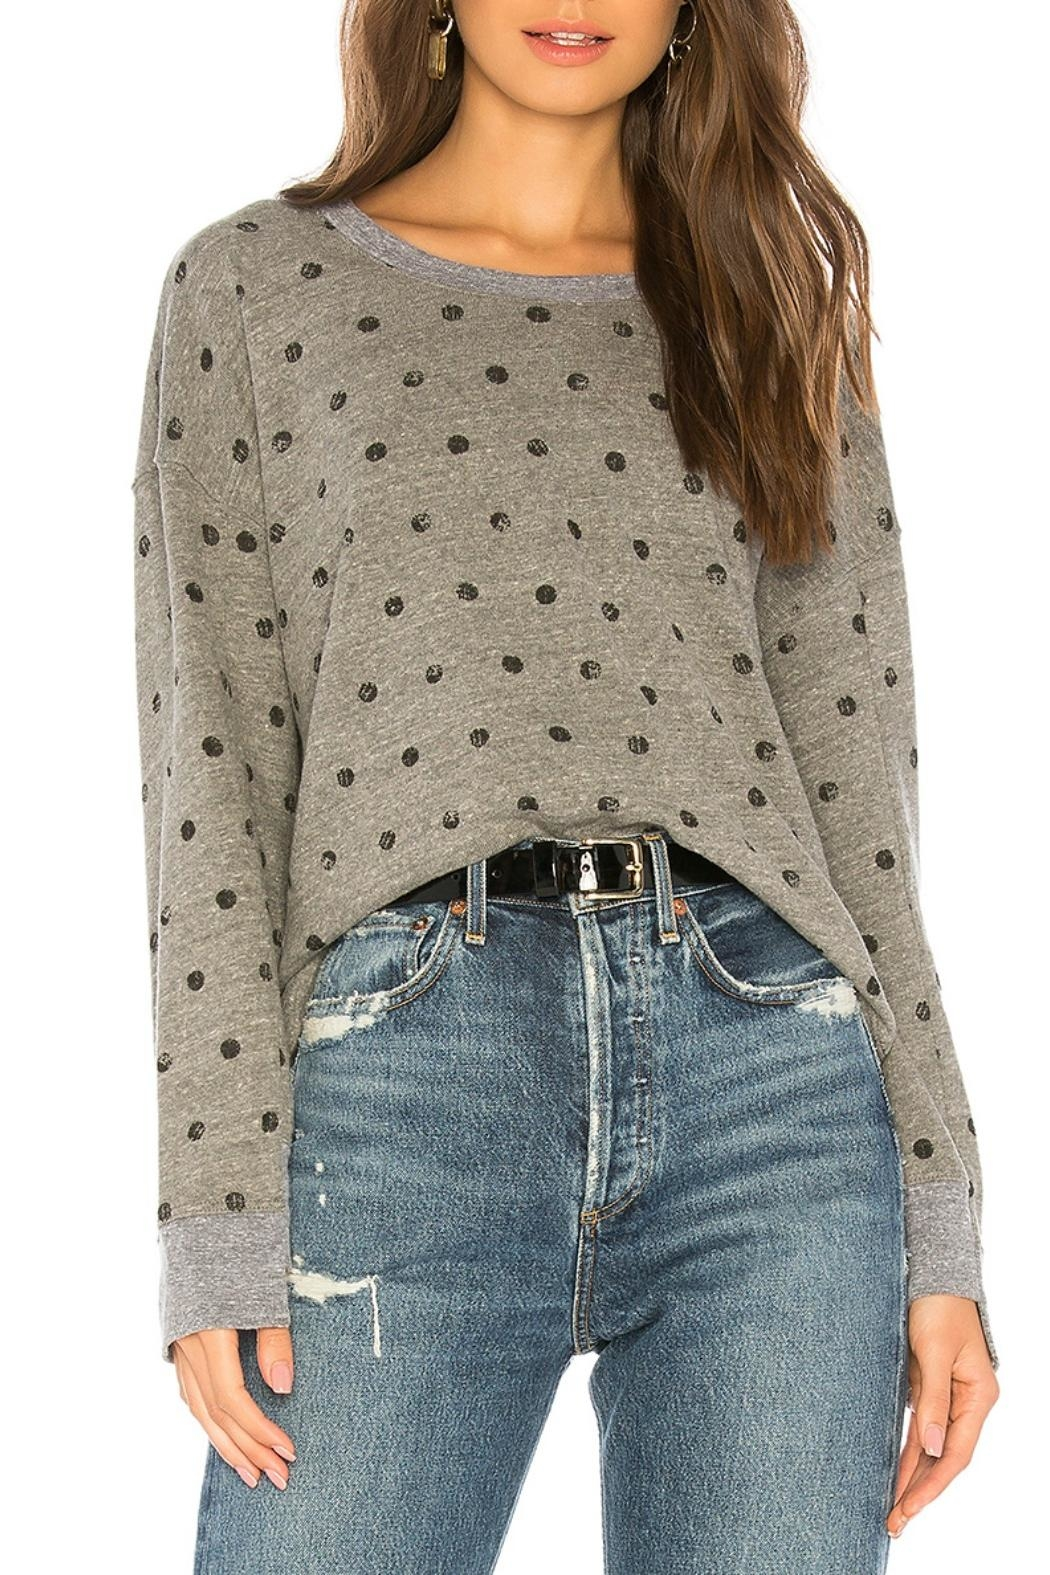 Splendid Painted Dot Sweater - Front Cropped Image